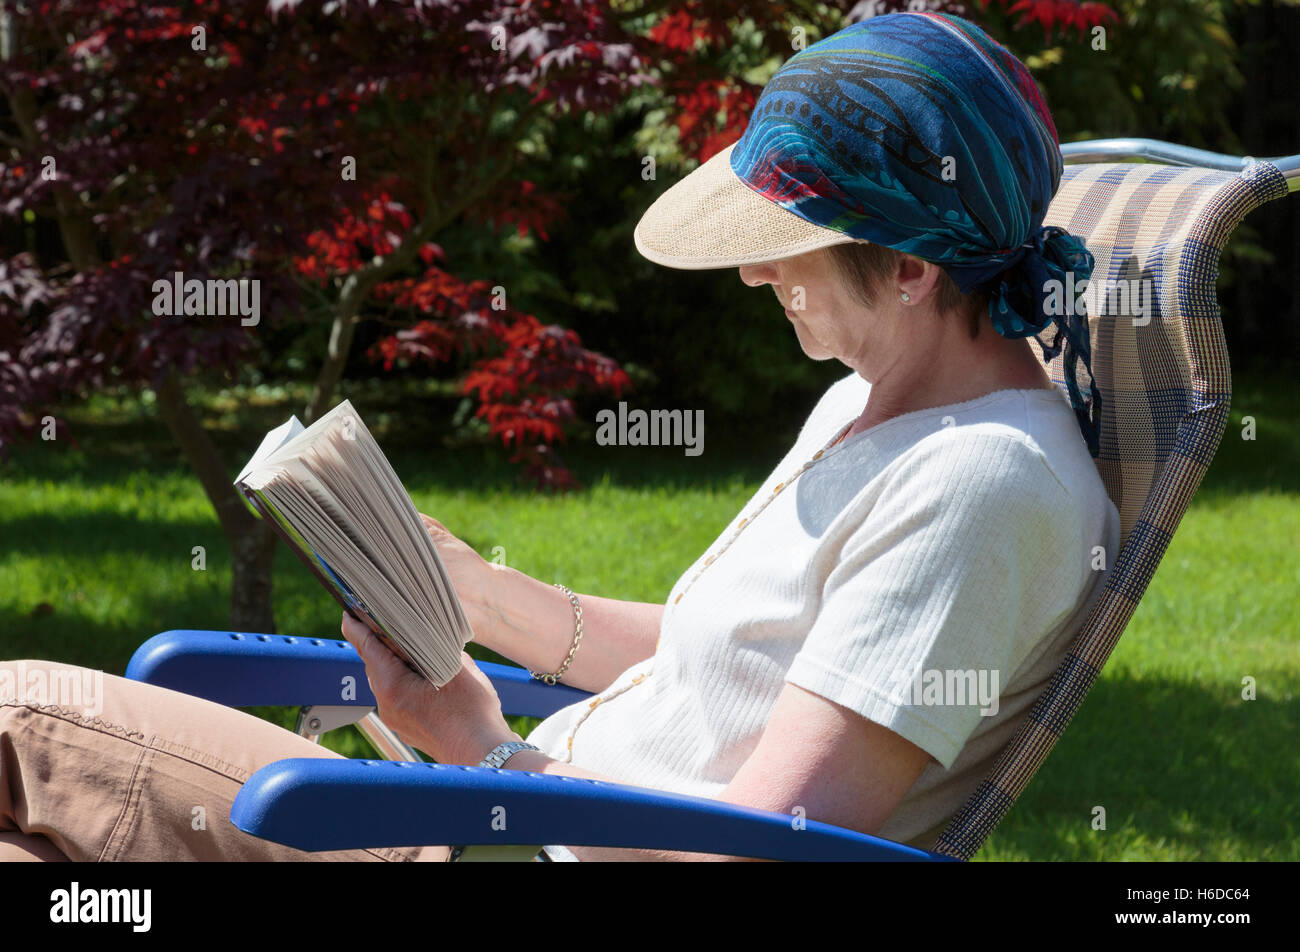 Someone retired senior woman relaxing in a backyard garden chair reading a book in summer sunshine shaded by sunhat. - Stock Image